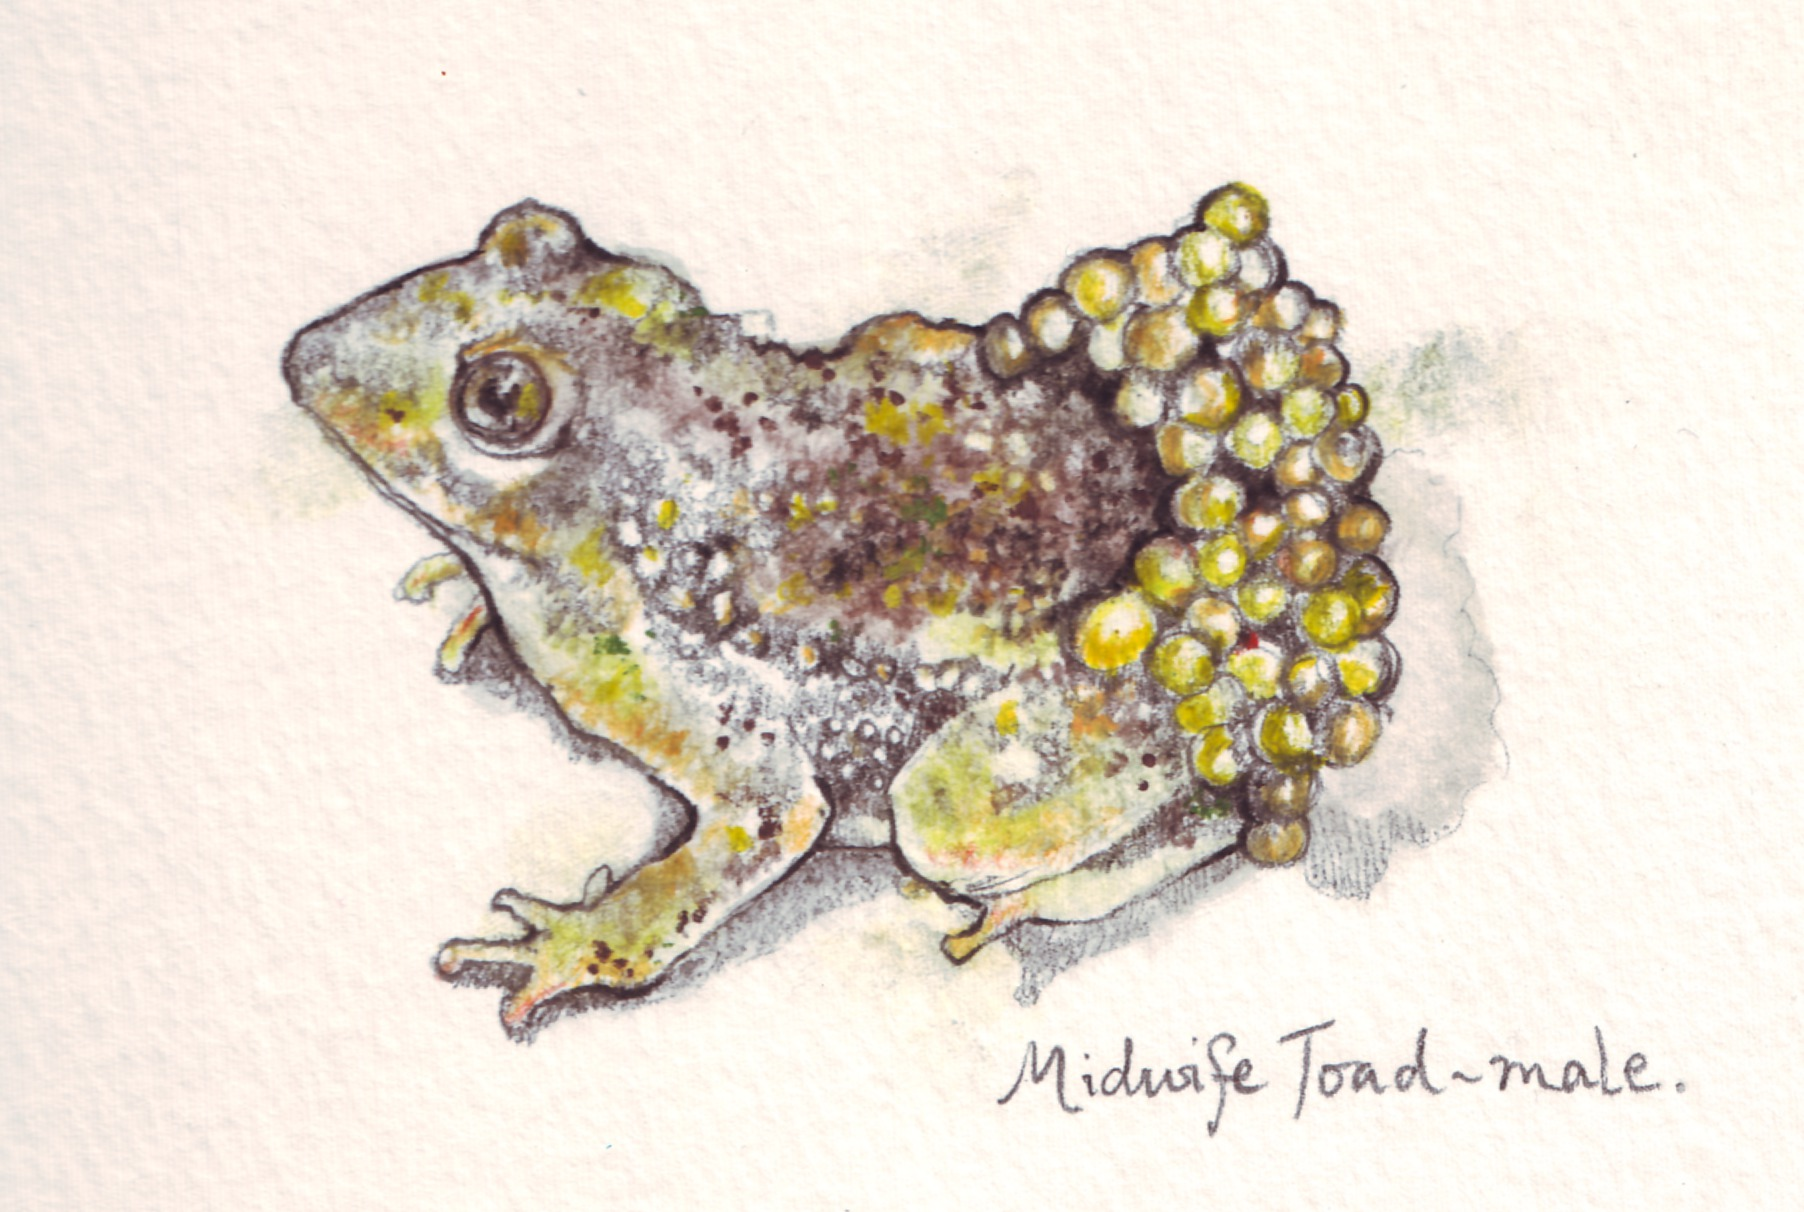 Midwife Toad-0